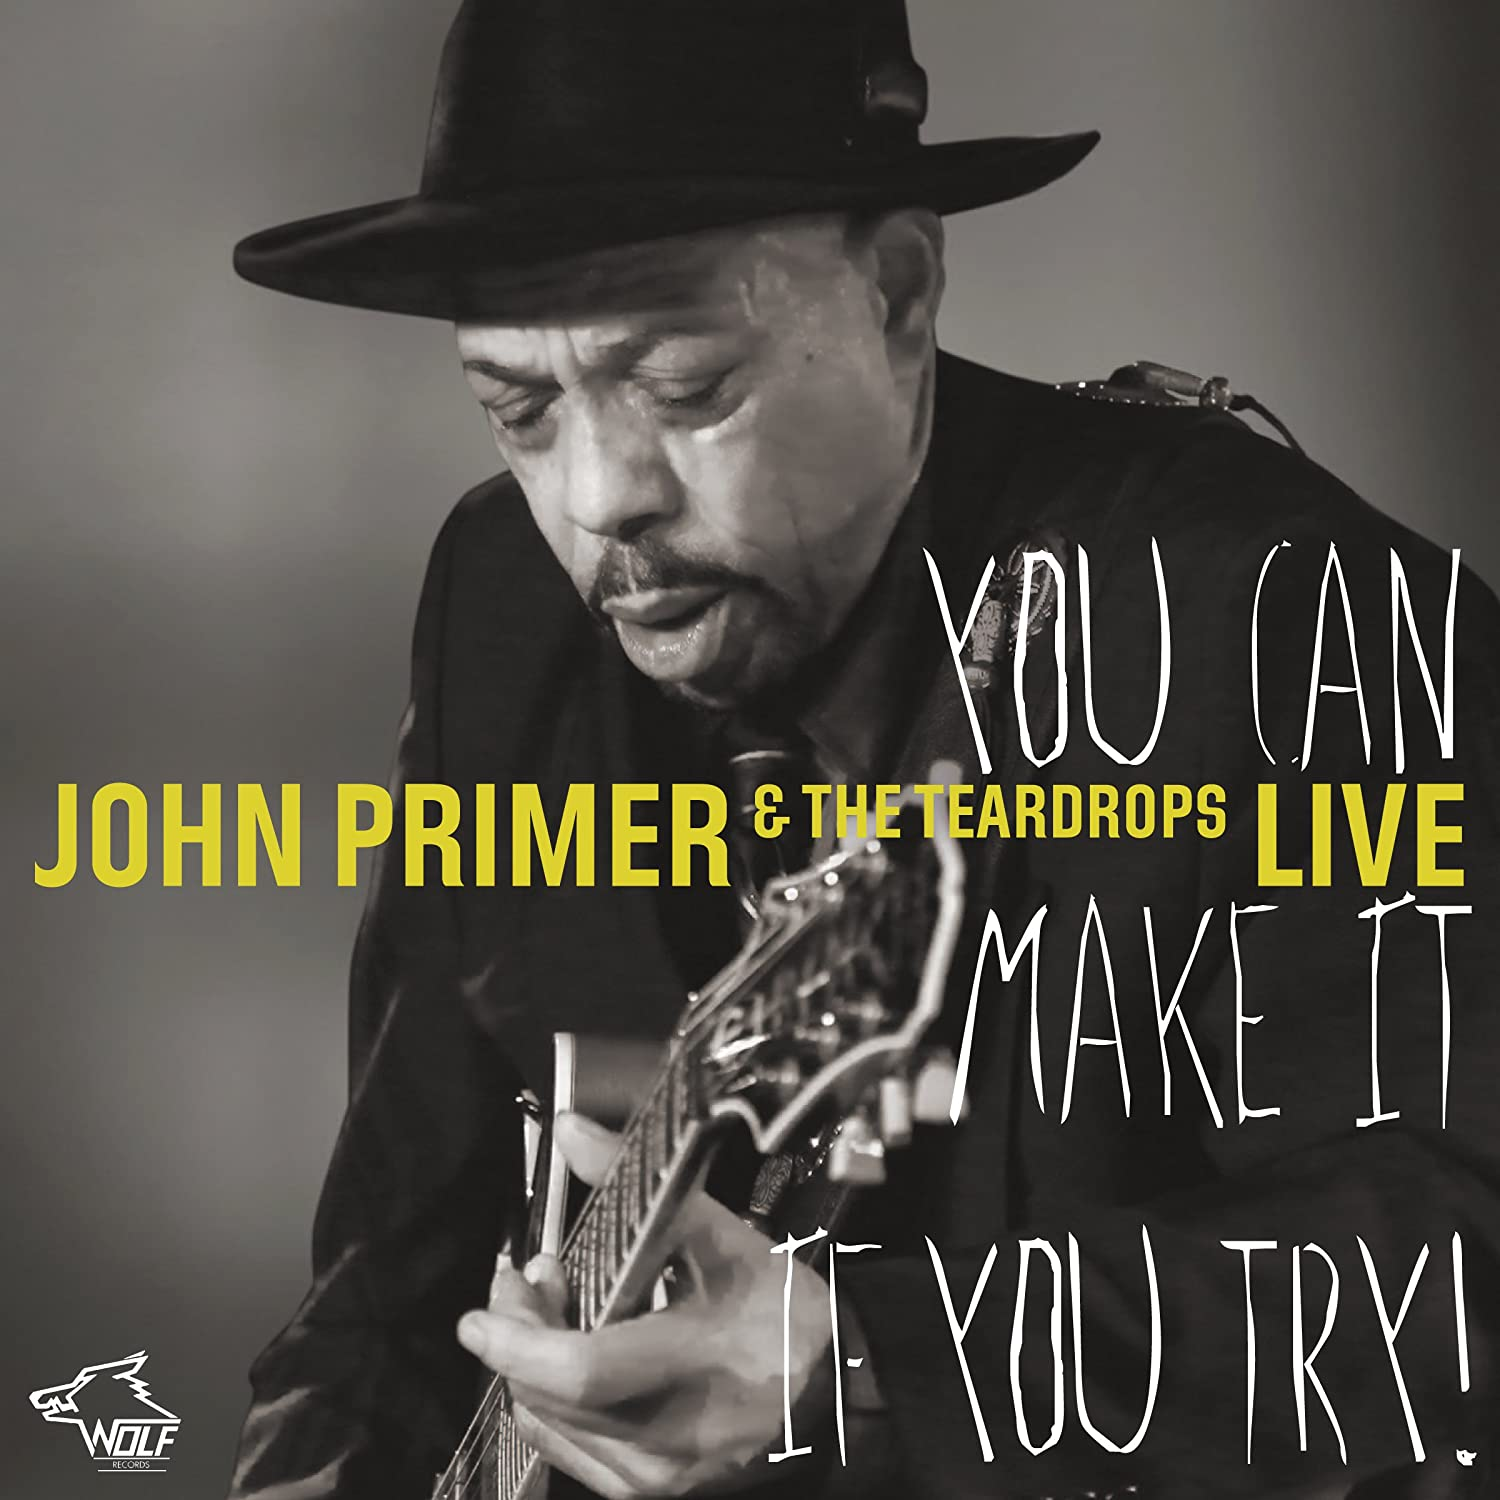 John Primer & The Teardrops - You Can Make It If You Try 81yylyRp1TL._SL1500_